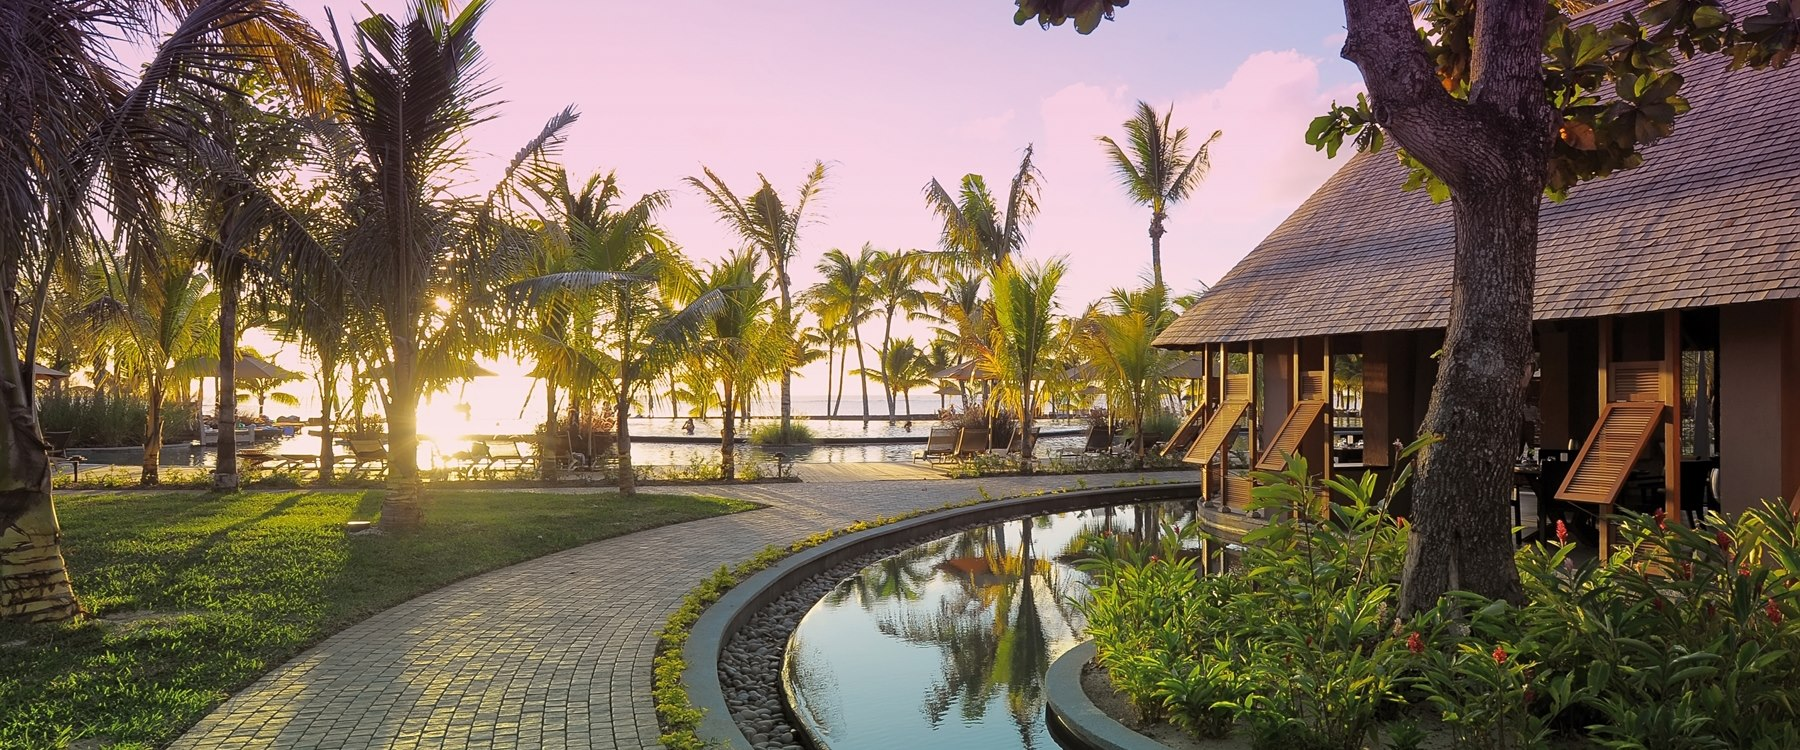 Sunset at Trou Aux Biches Beachcomber Golf Resort & Spa, Mauritius